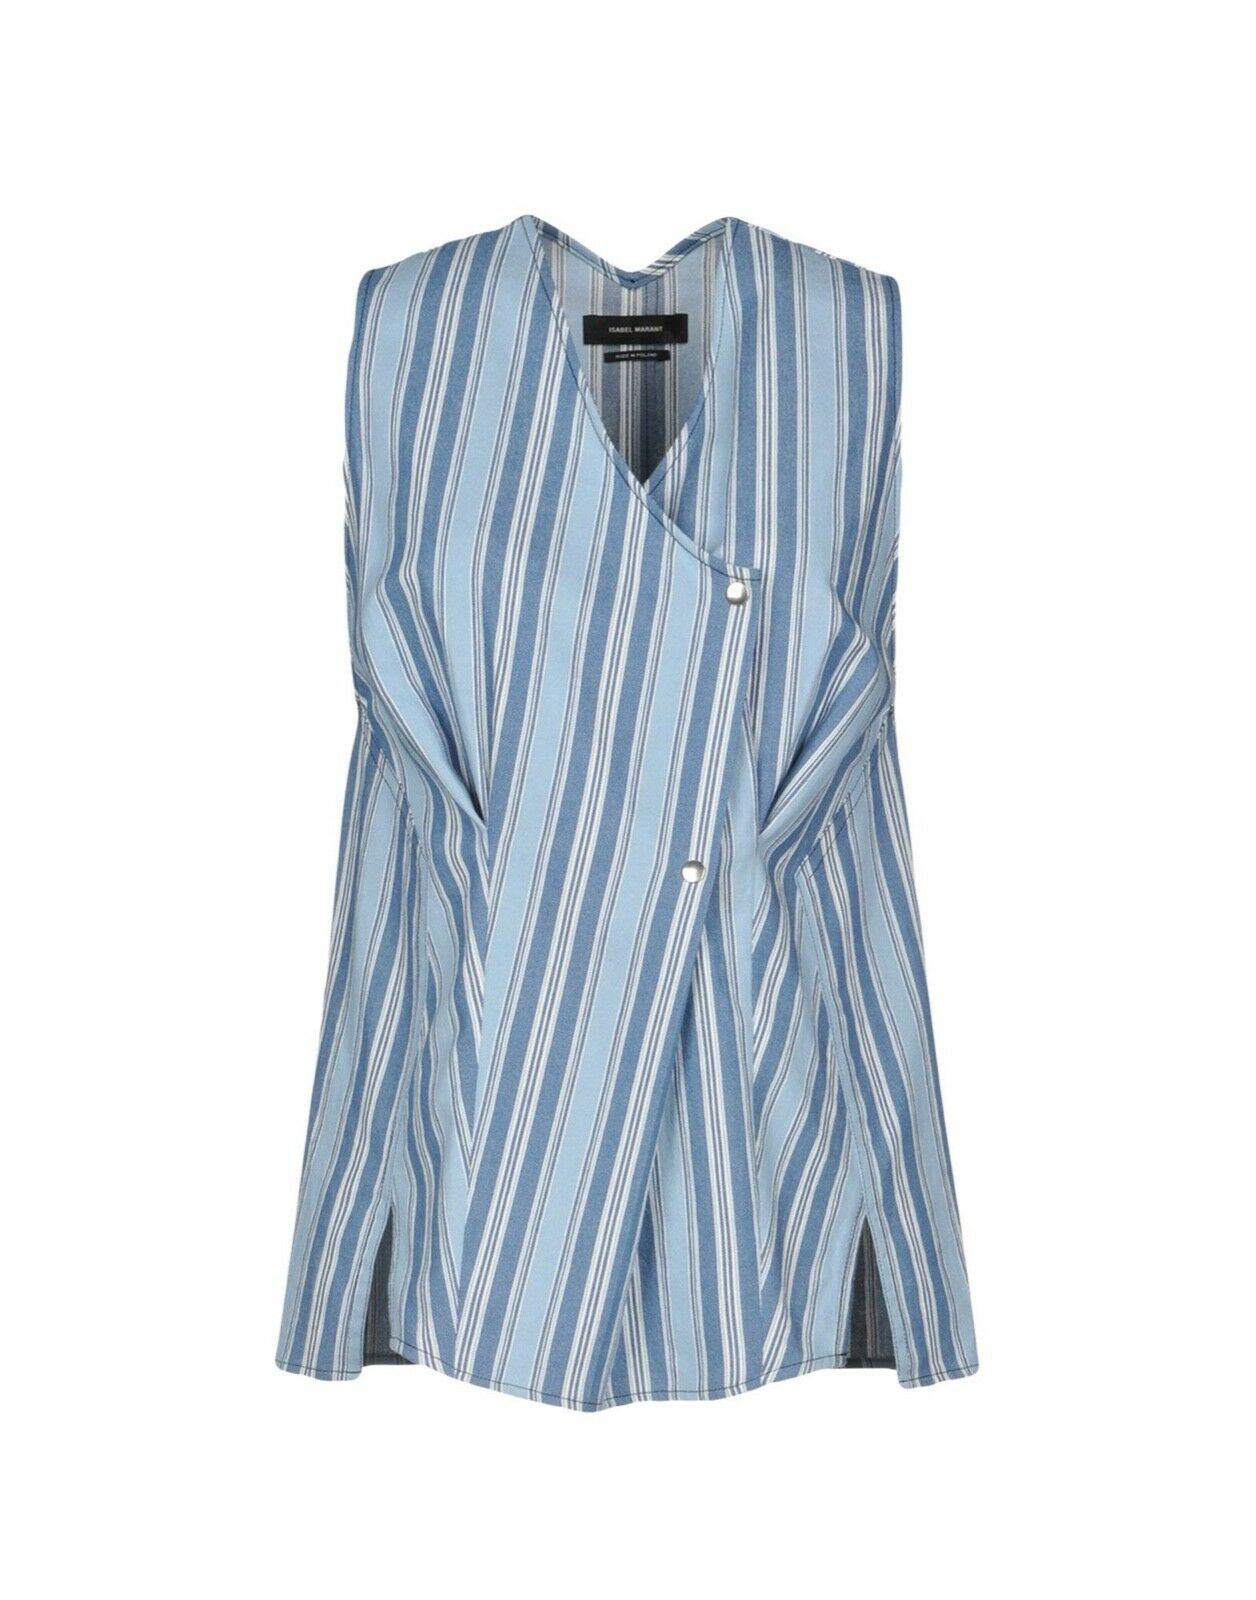 ISABEL MARANT   Siliva Wrap Cotton Shirt Brand New With Tags Net A Porter